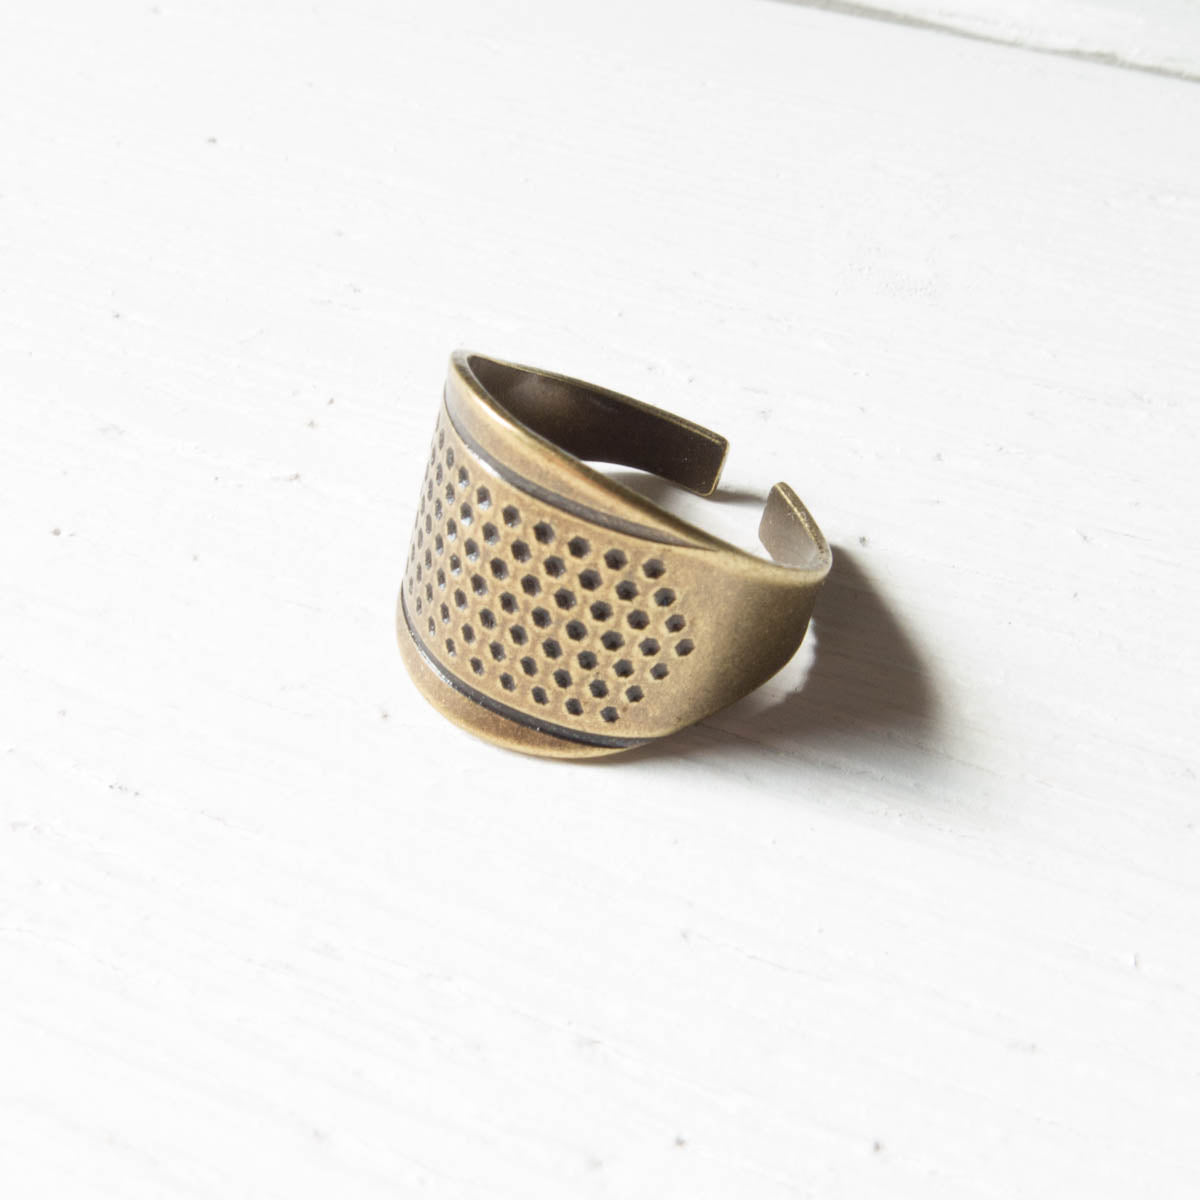 Little House Knuckle Thimble - Bronze Thimble - Snuggly Monkey